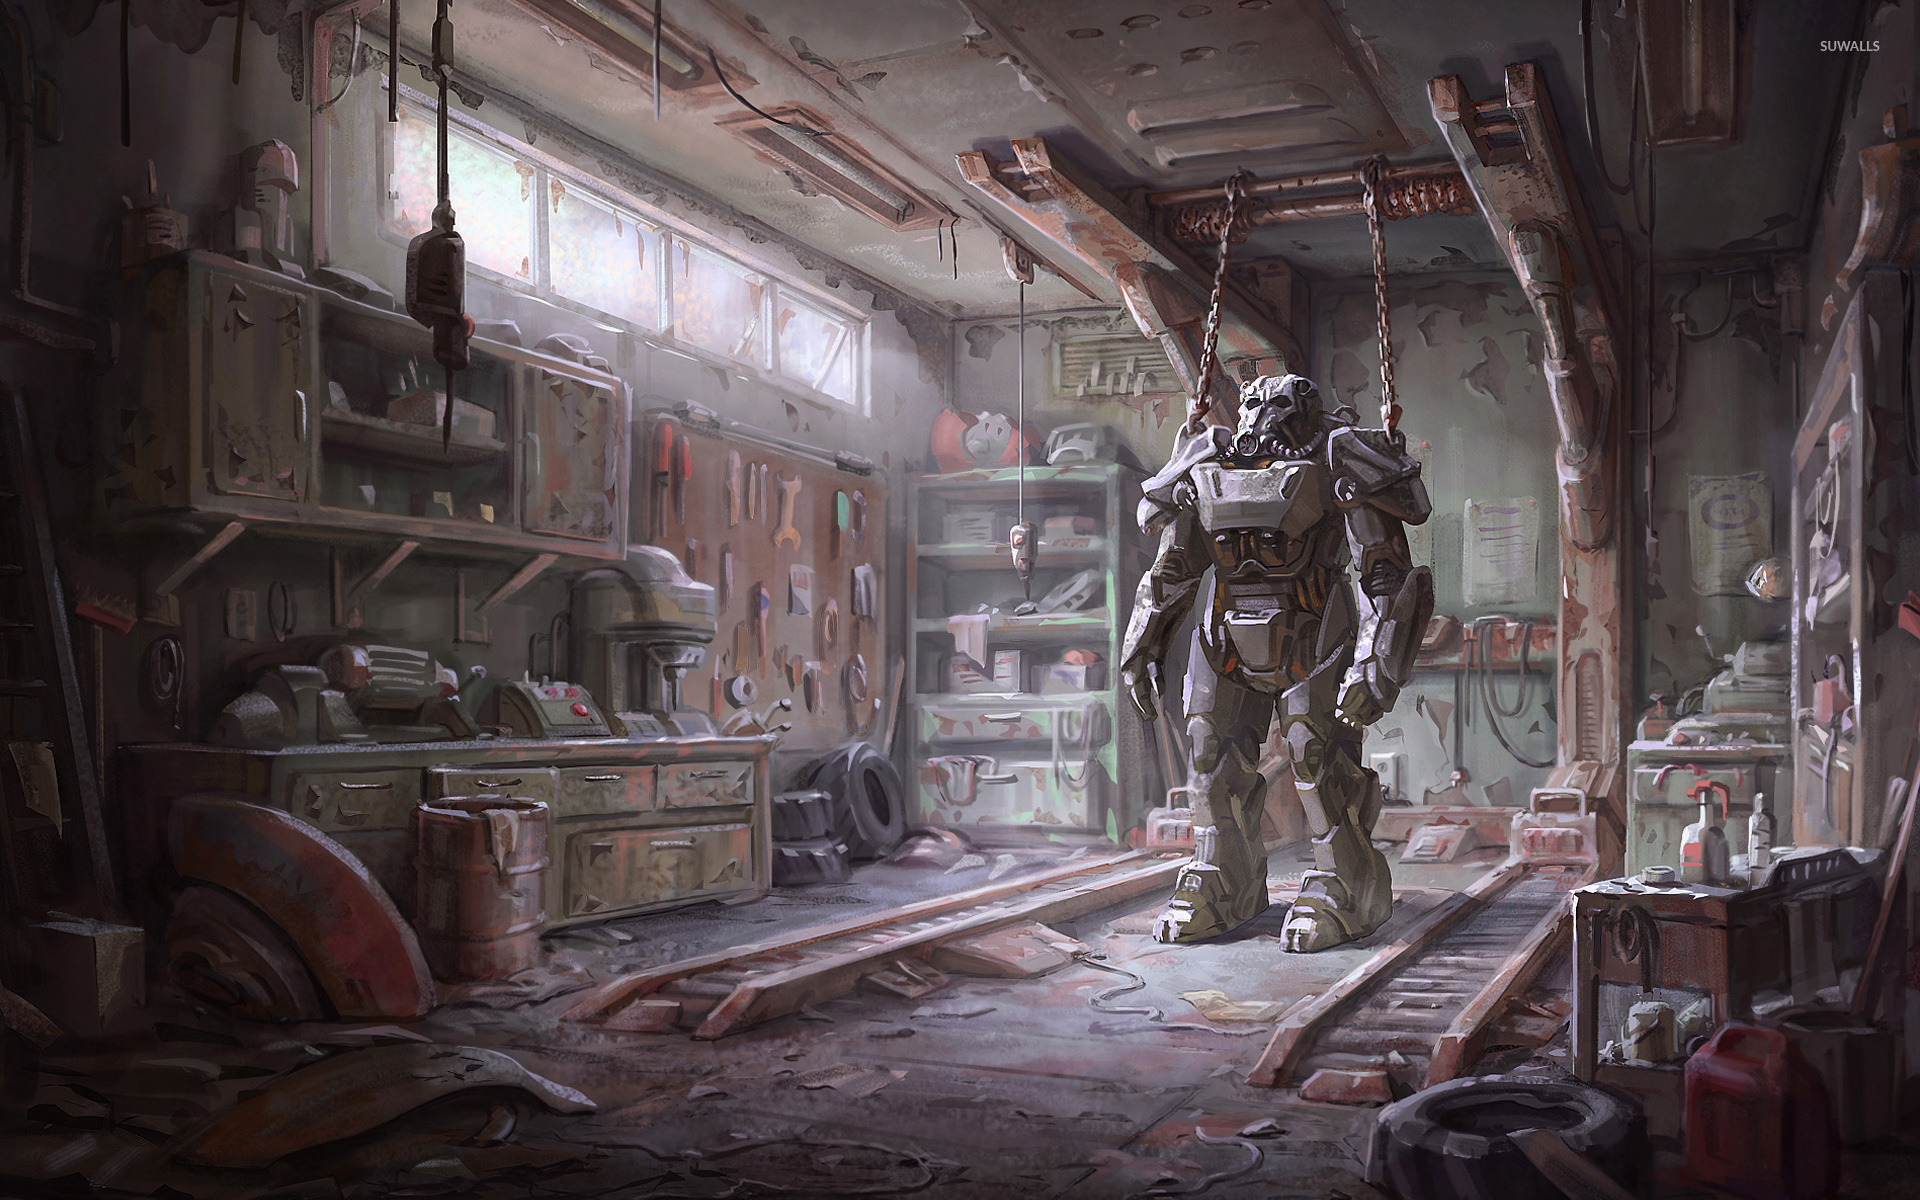 Wallpaper Fallout wallpaper hd